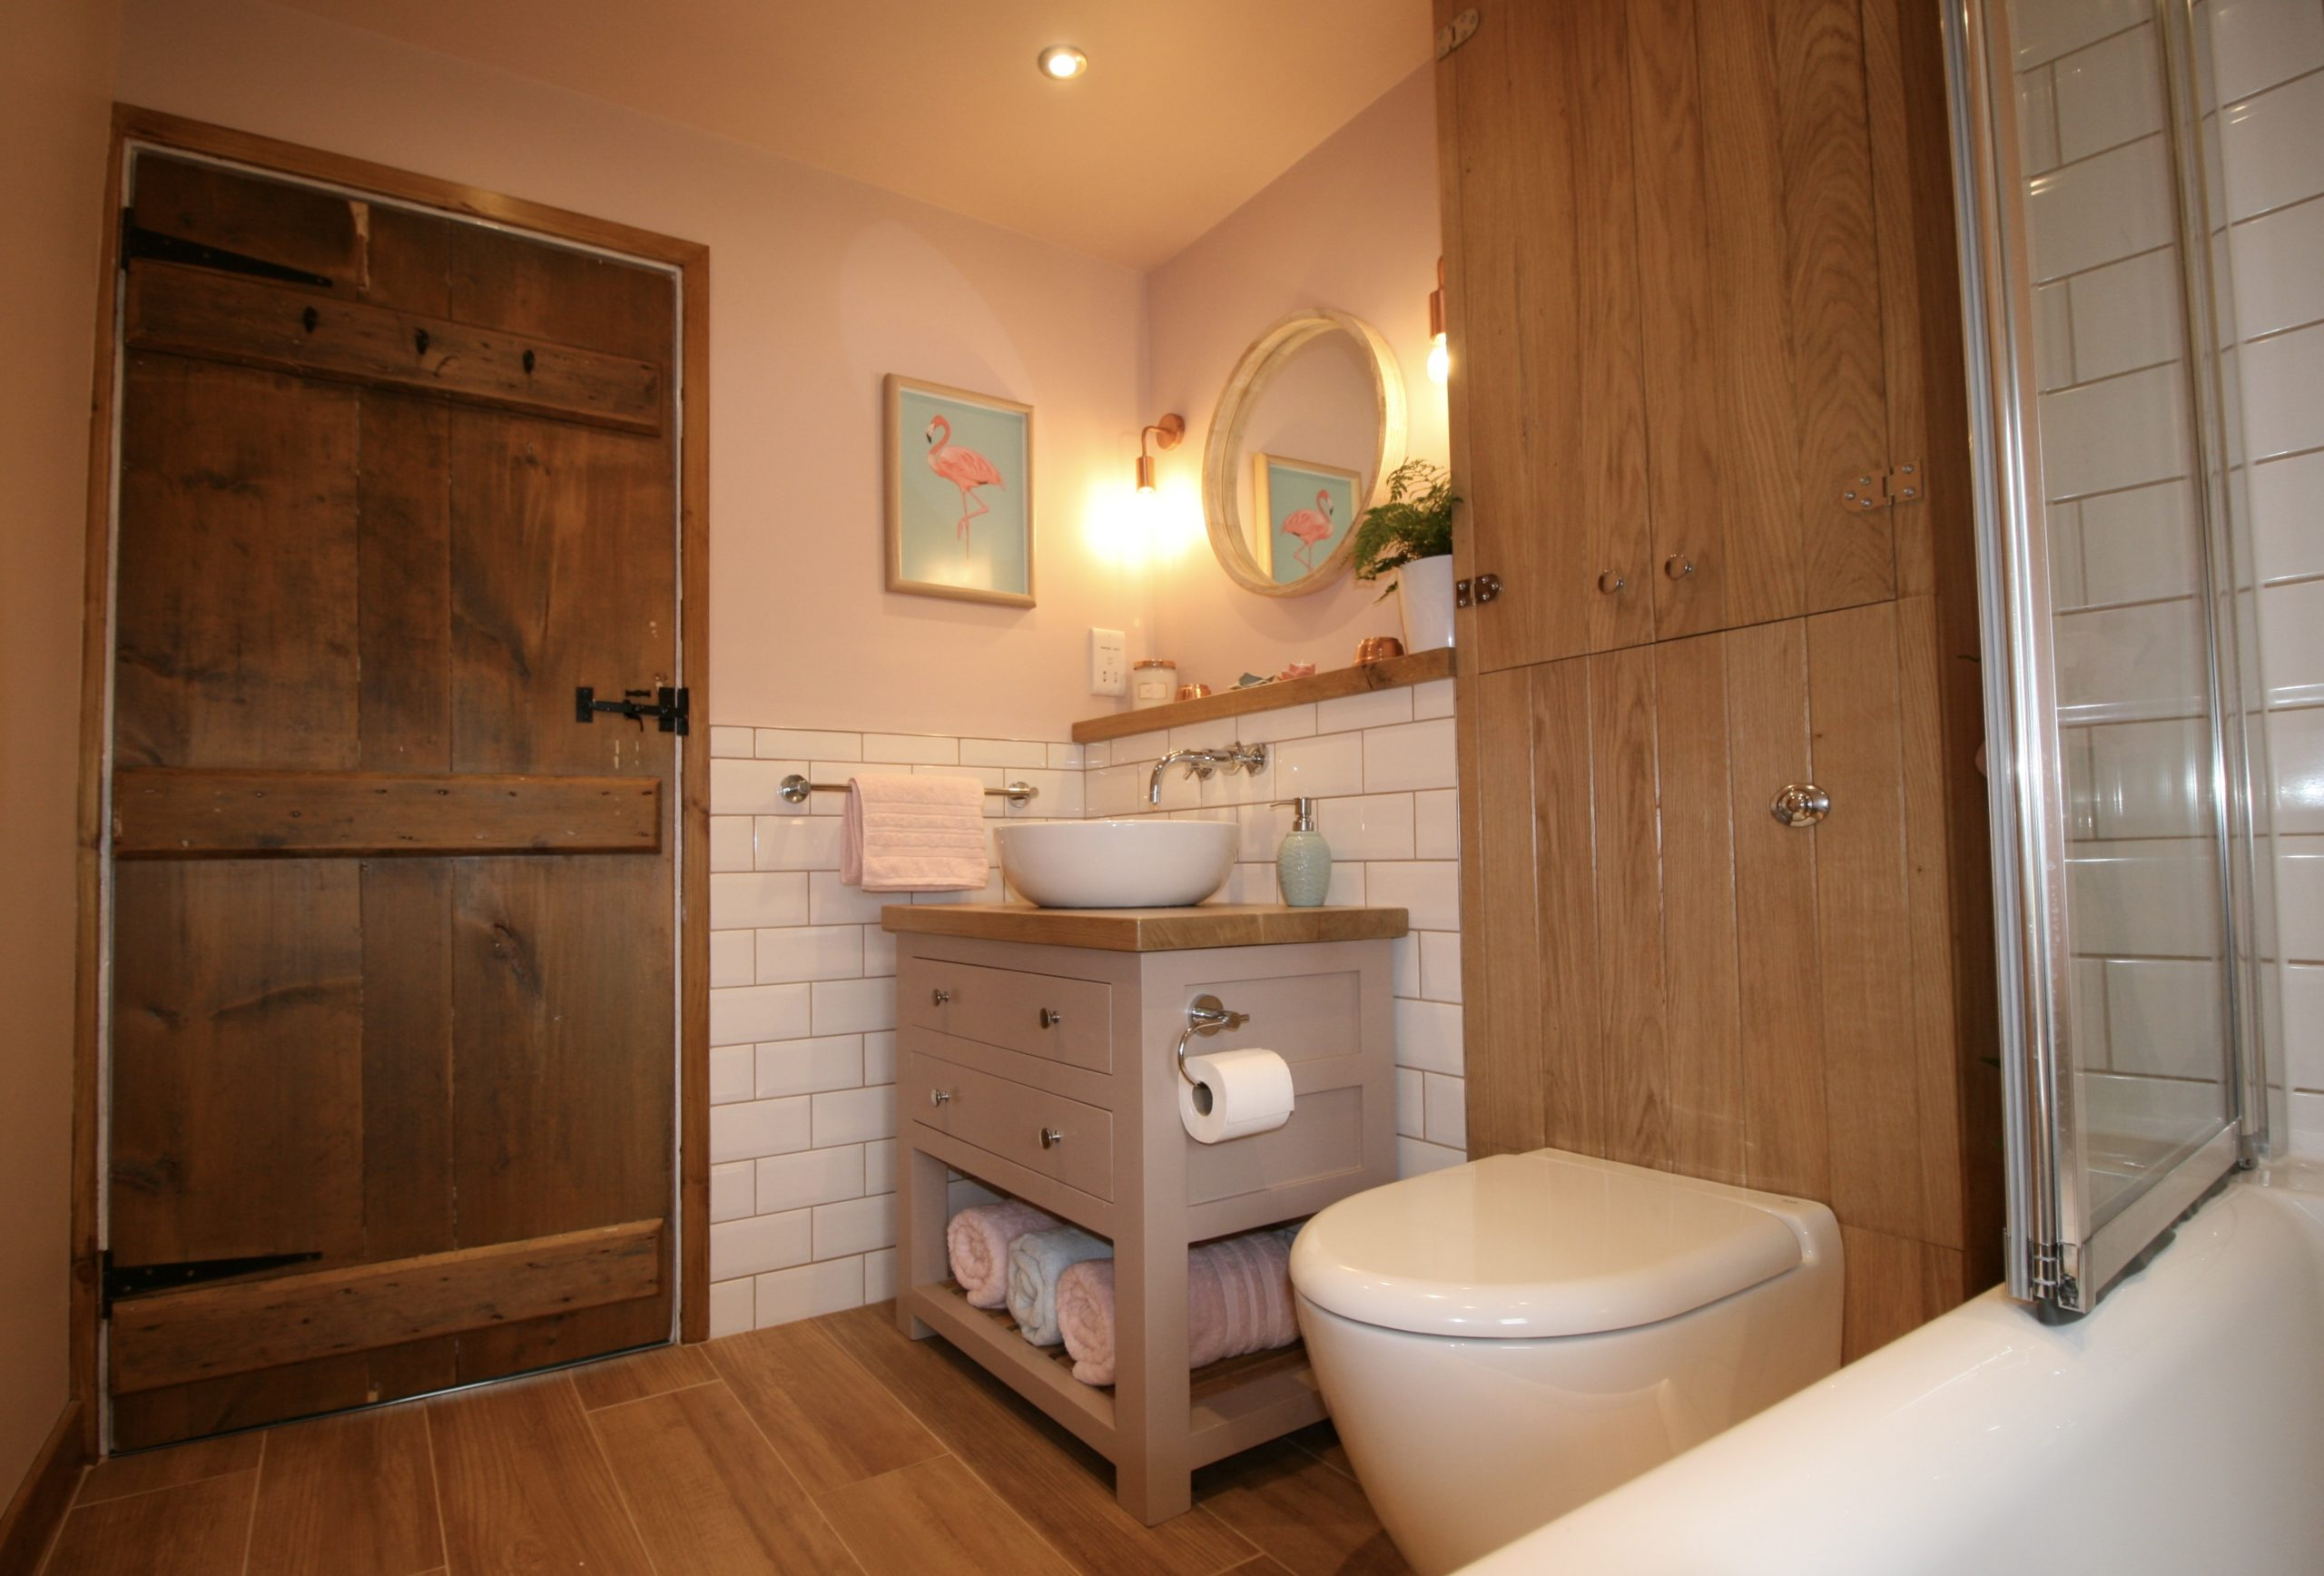 Bathrooms - Modern country style pastel pink bathroom with copper lights and painted vanity unit by Amelia Wilson Interiors